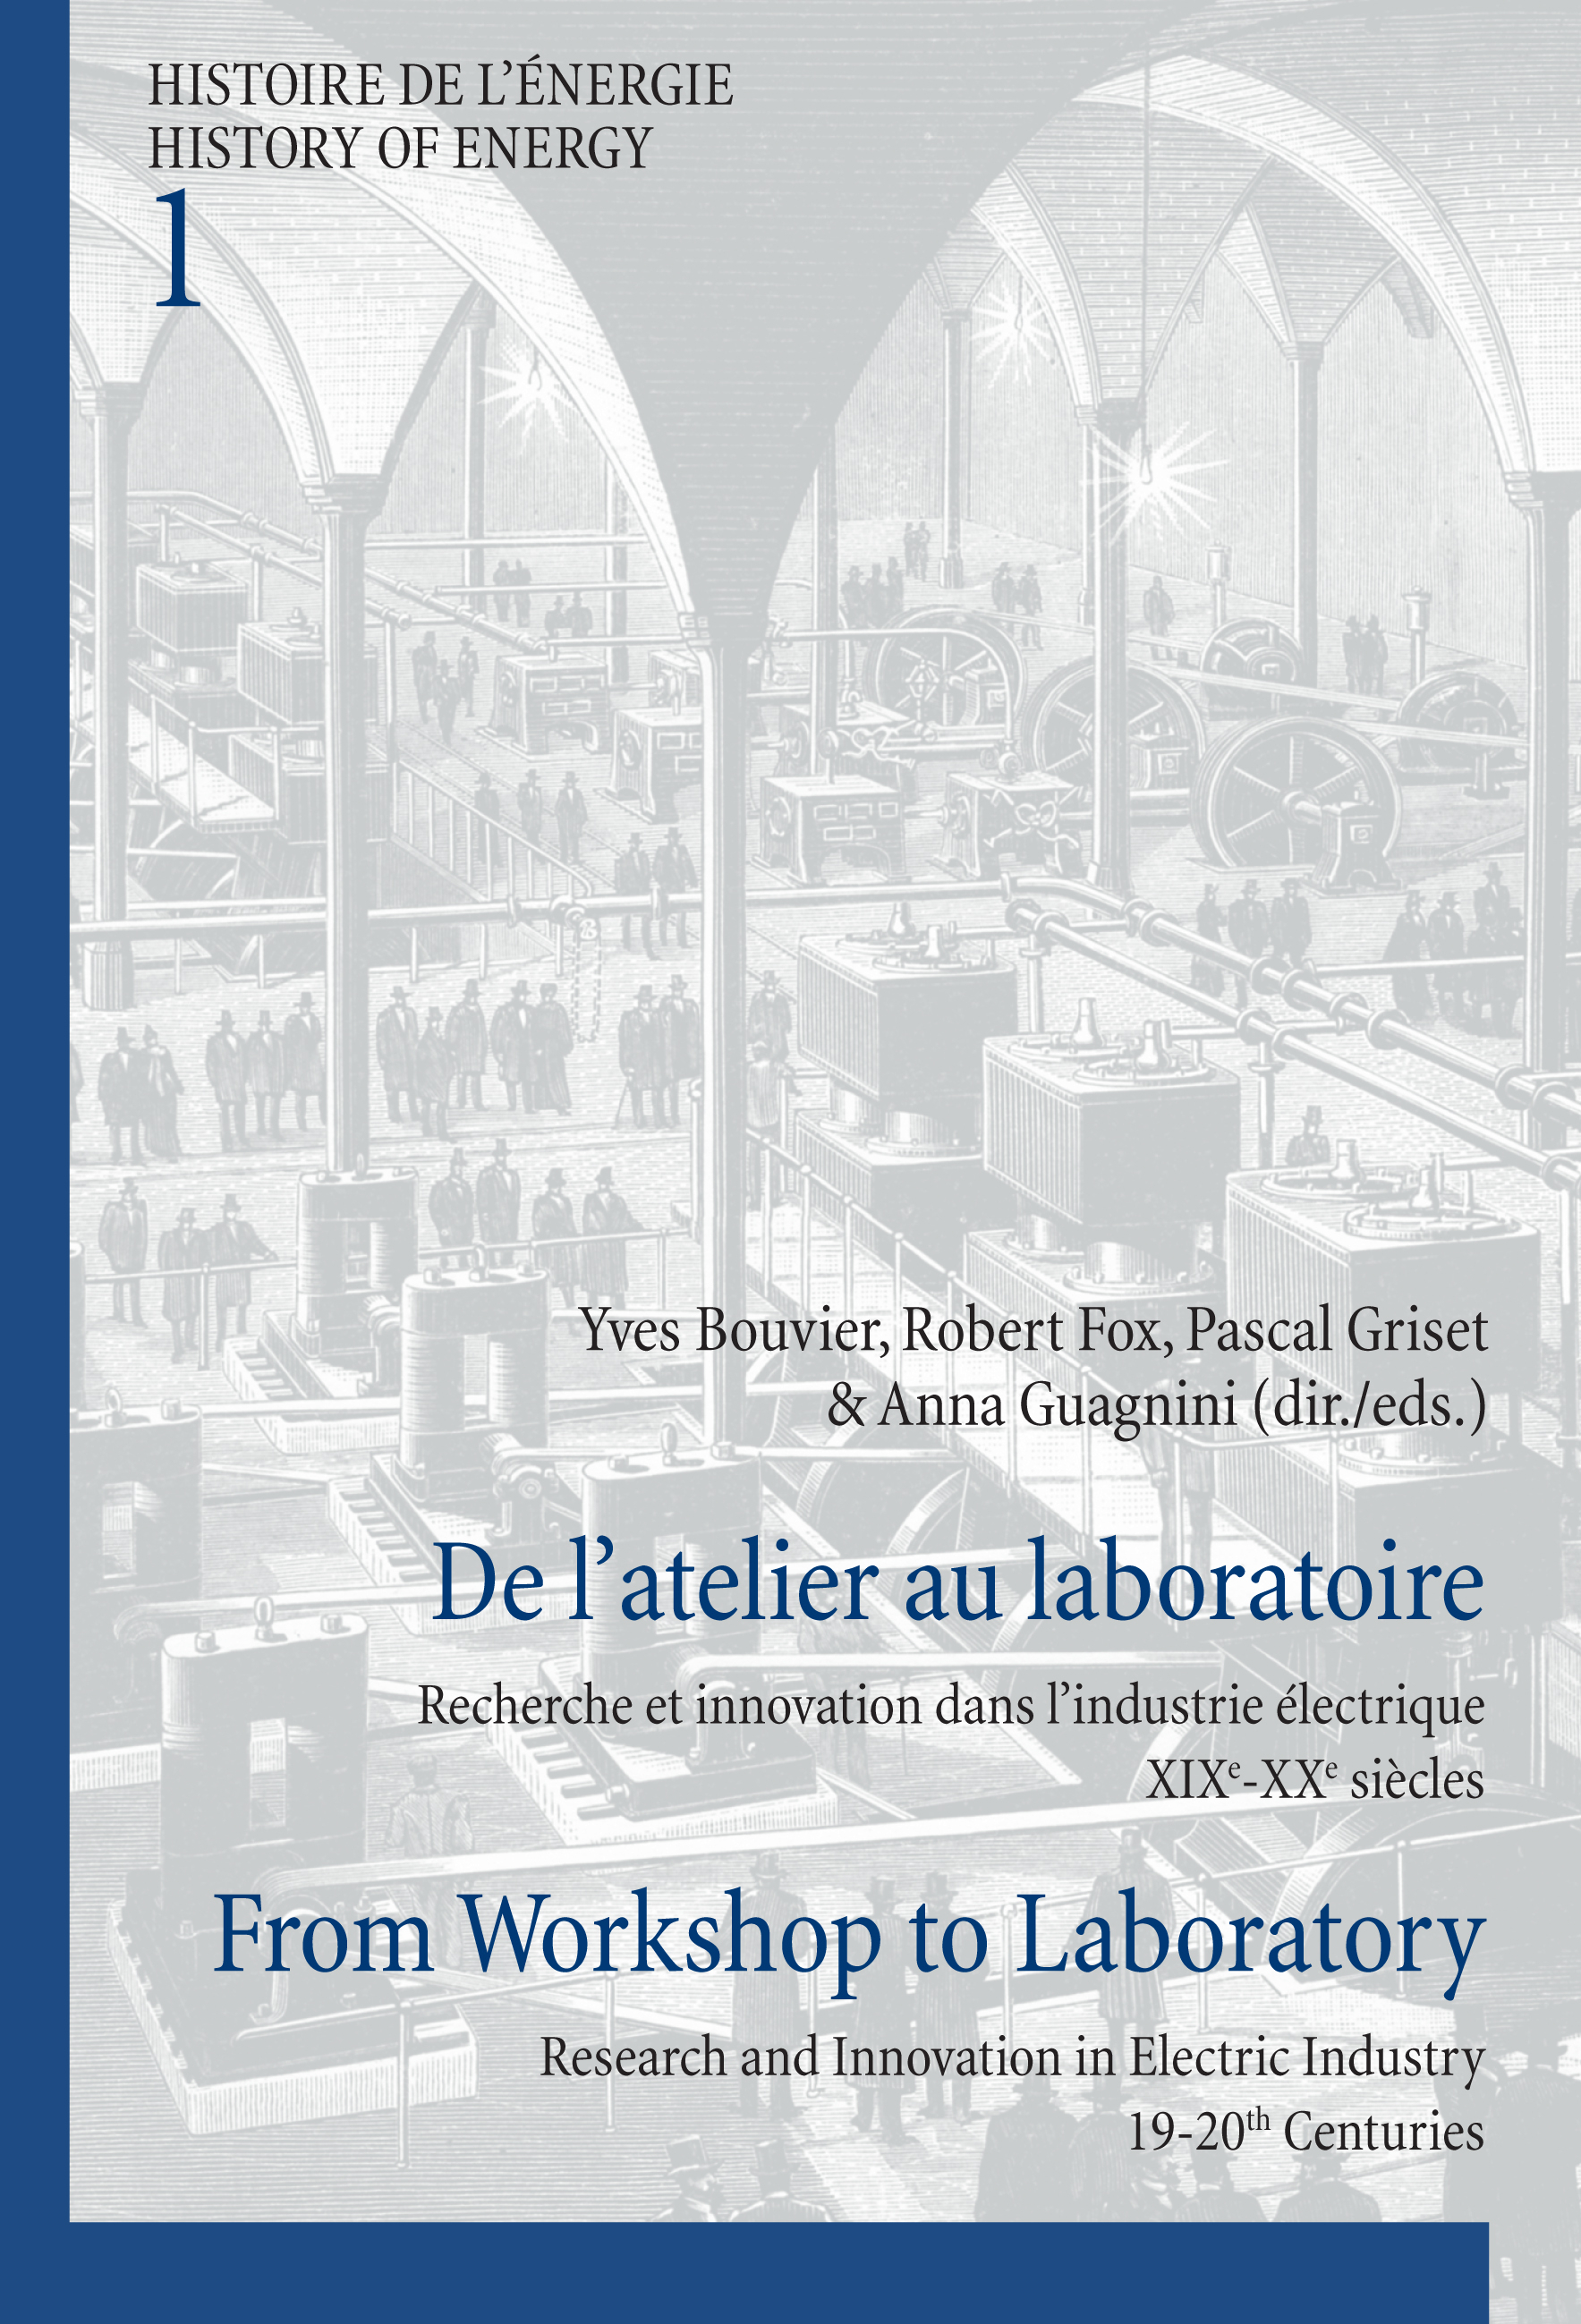 DE L'ATELIER AU LABORATOIRE/FROM WORKSHOP TO LABORATORY